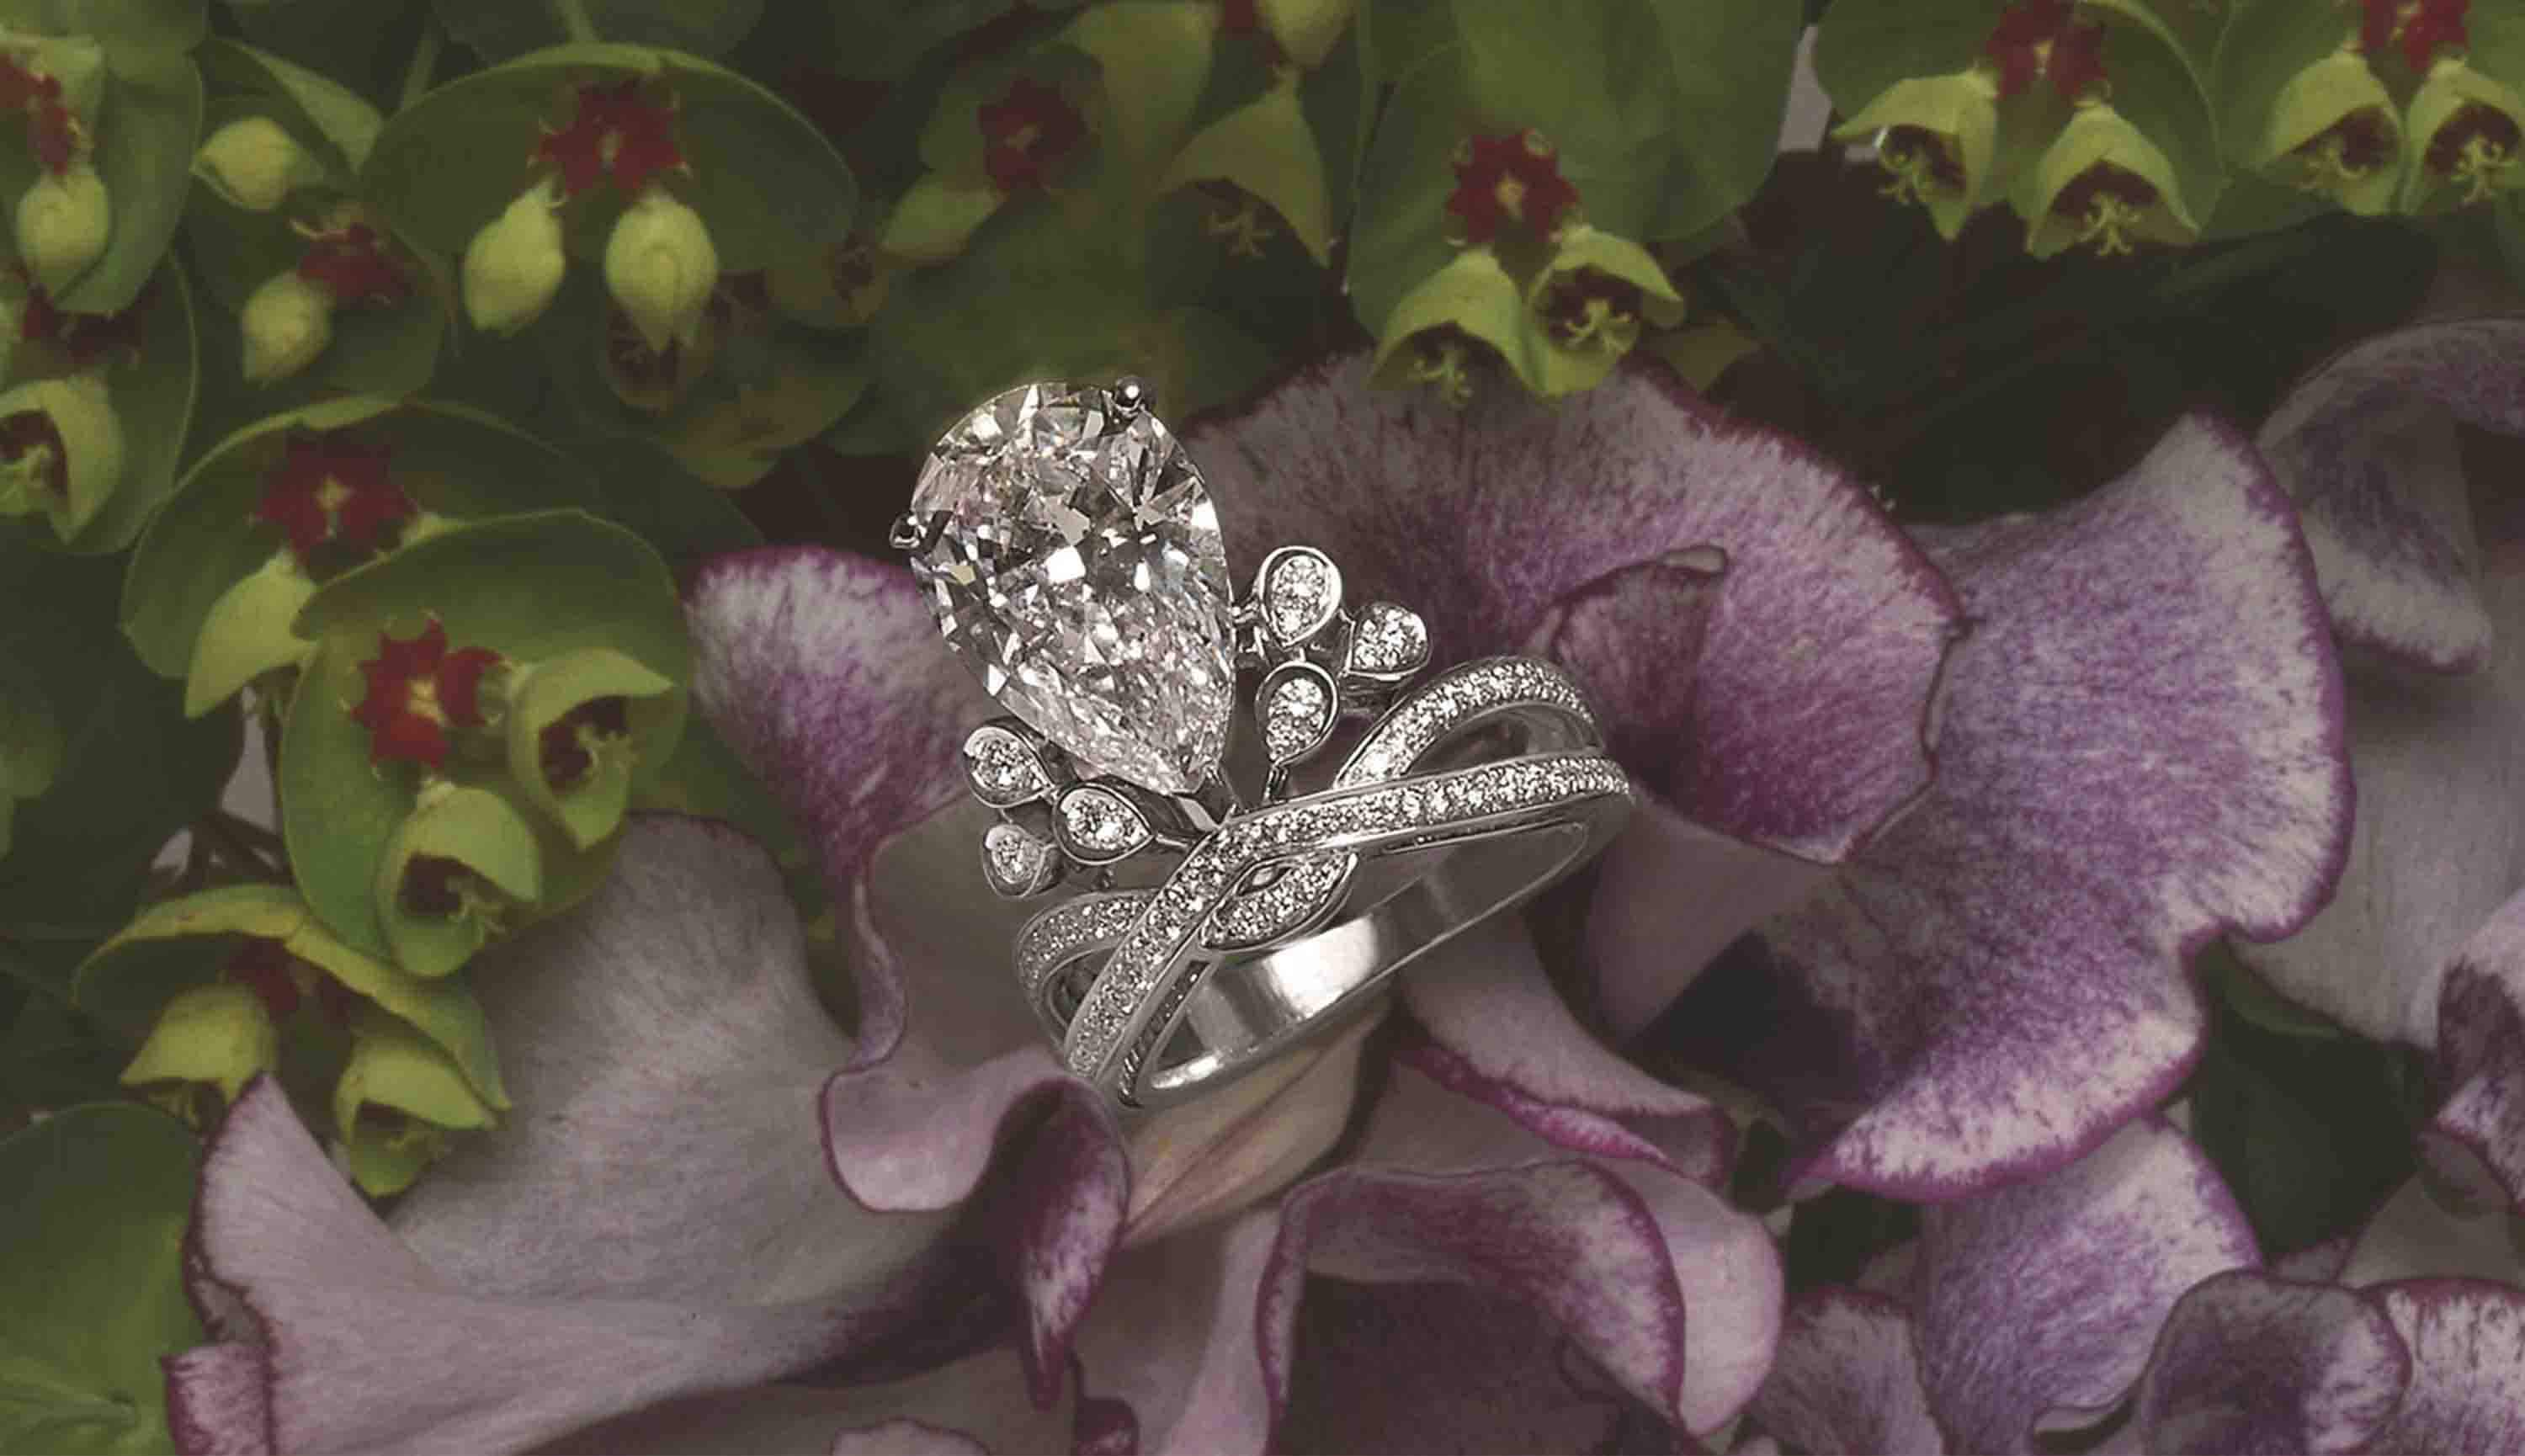 Aigrette Impériale ring